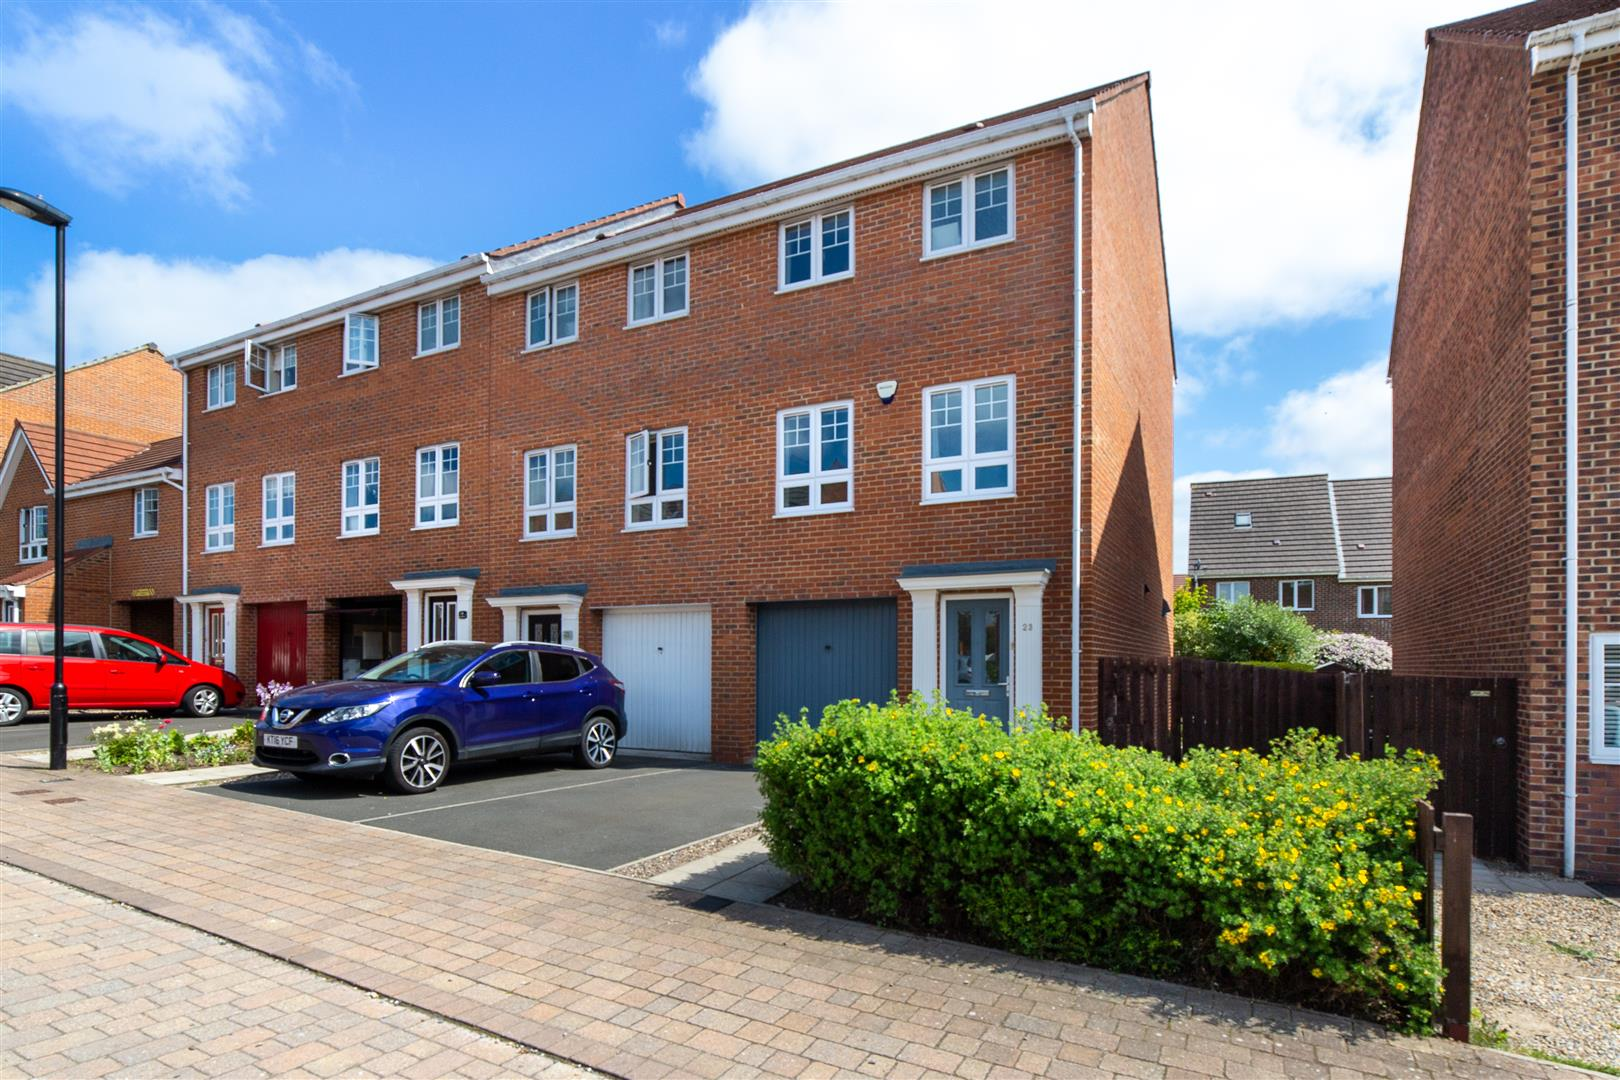 4 bed town house for sale in Ashover Road, Kenton, NE3